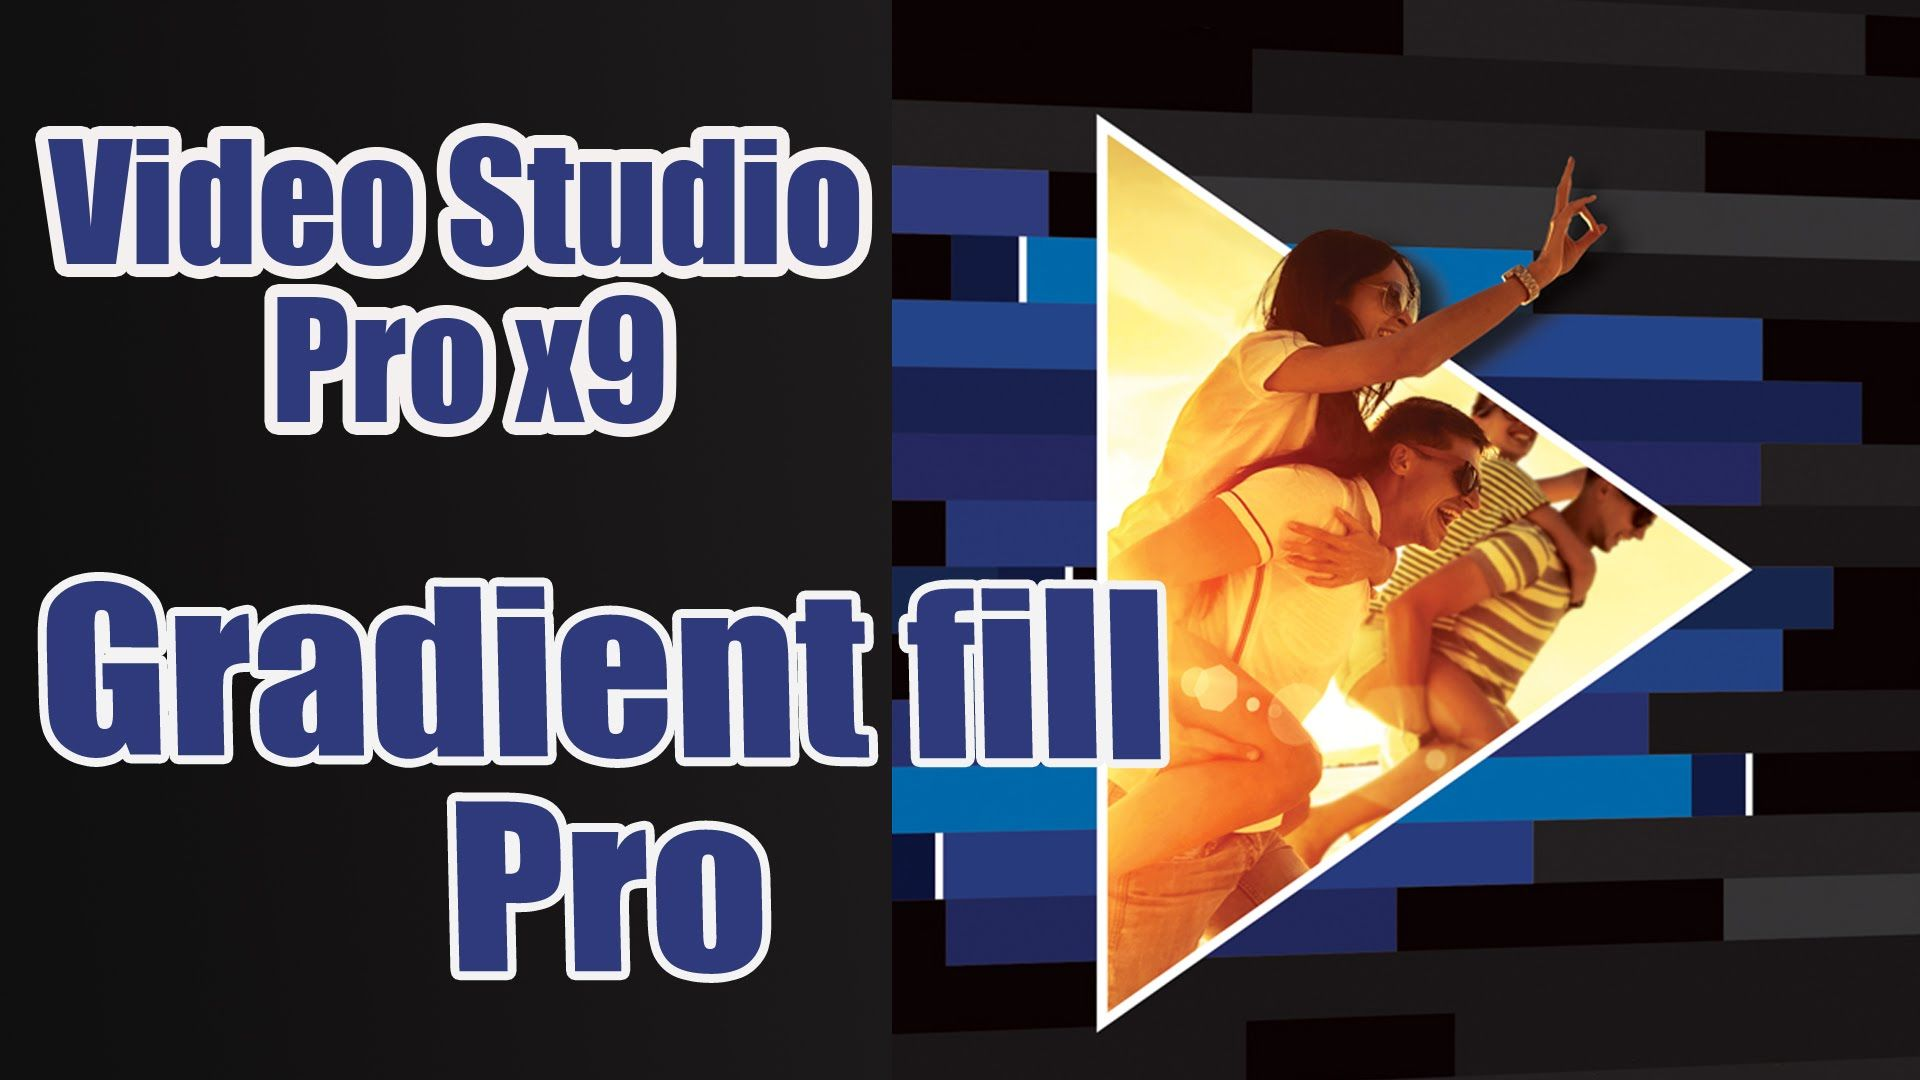 Corel Videostudio X9 Corel Videostudio X9 Gradient Fill Pro Corel Video Studio Pro